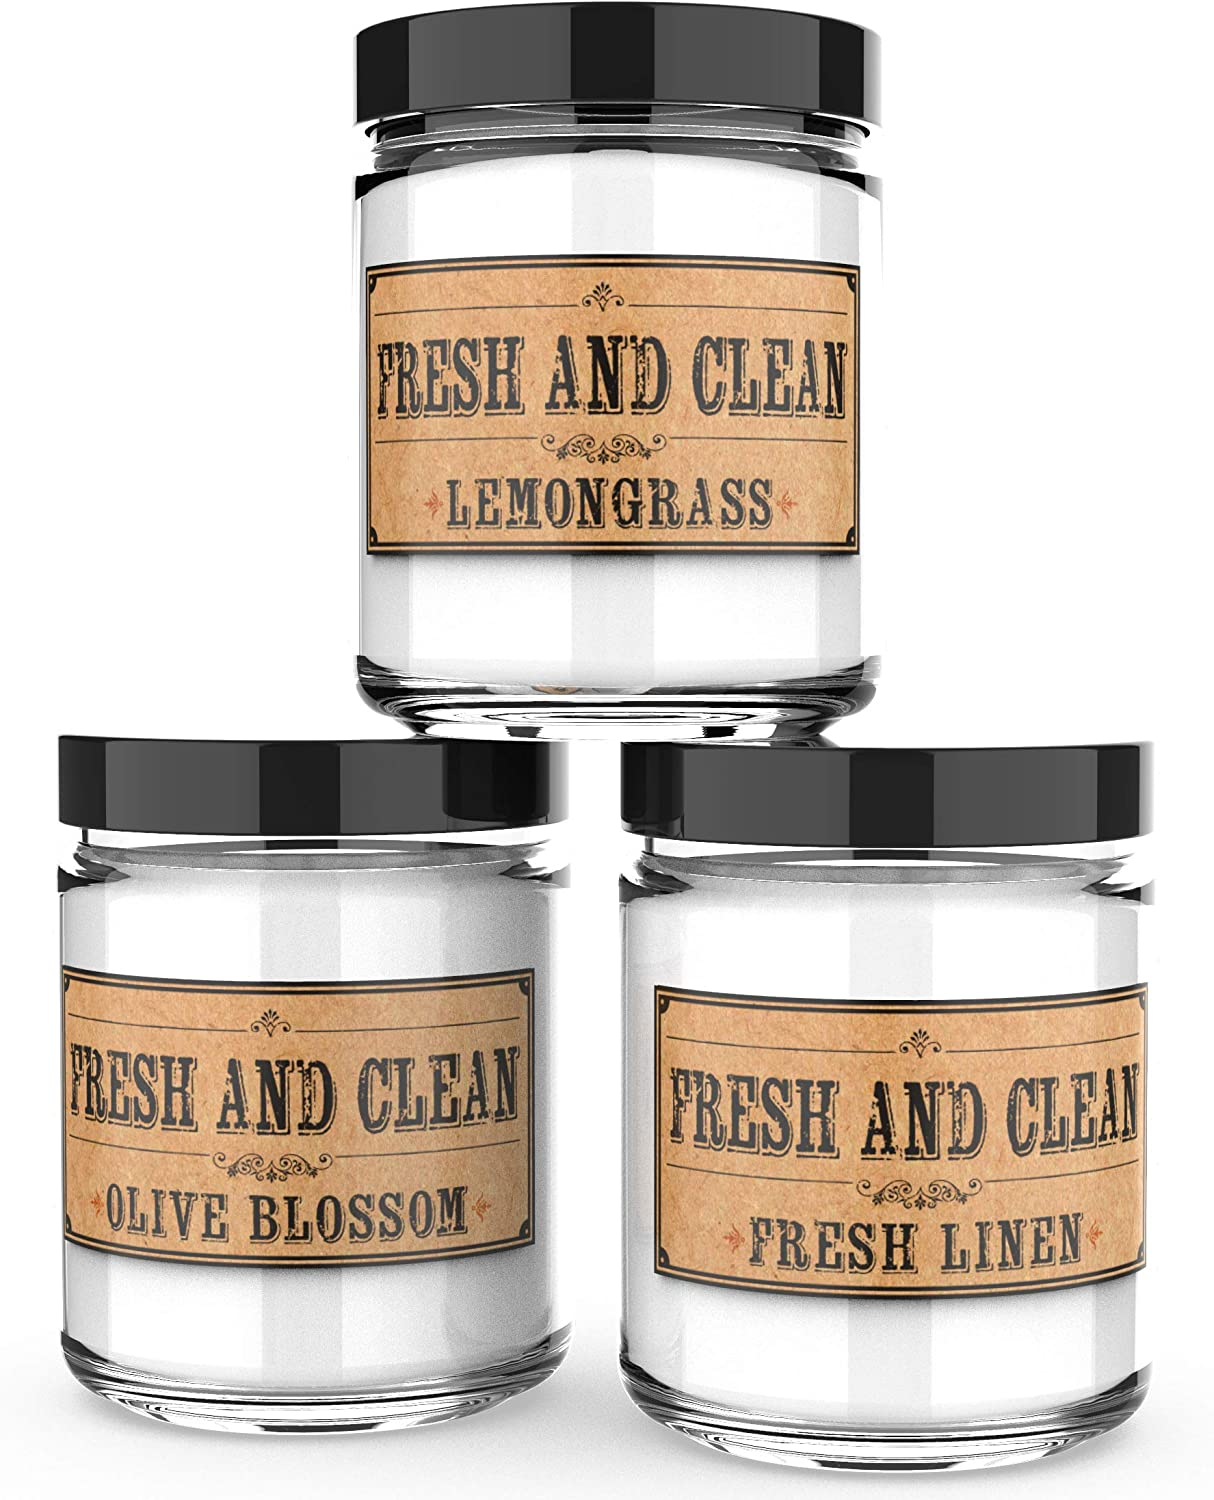 Scented Candles - Fresh & Clean- Decorative Aromatherapy - Handmade in The USA with Only The Best Fragrance Oils - 3 x 4-Ounce Soy Candles